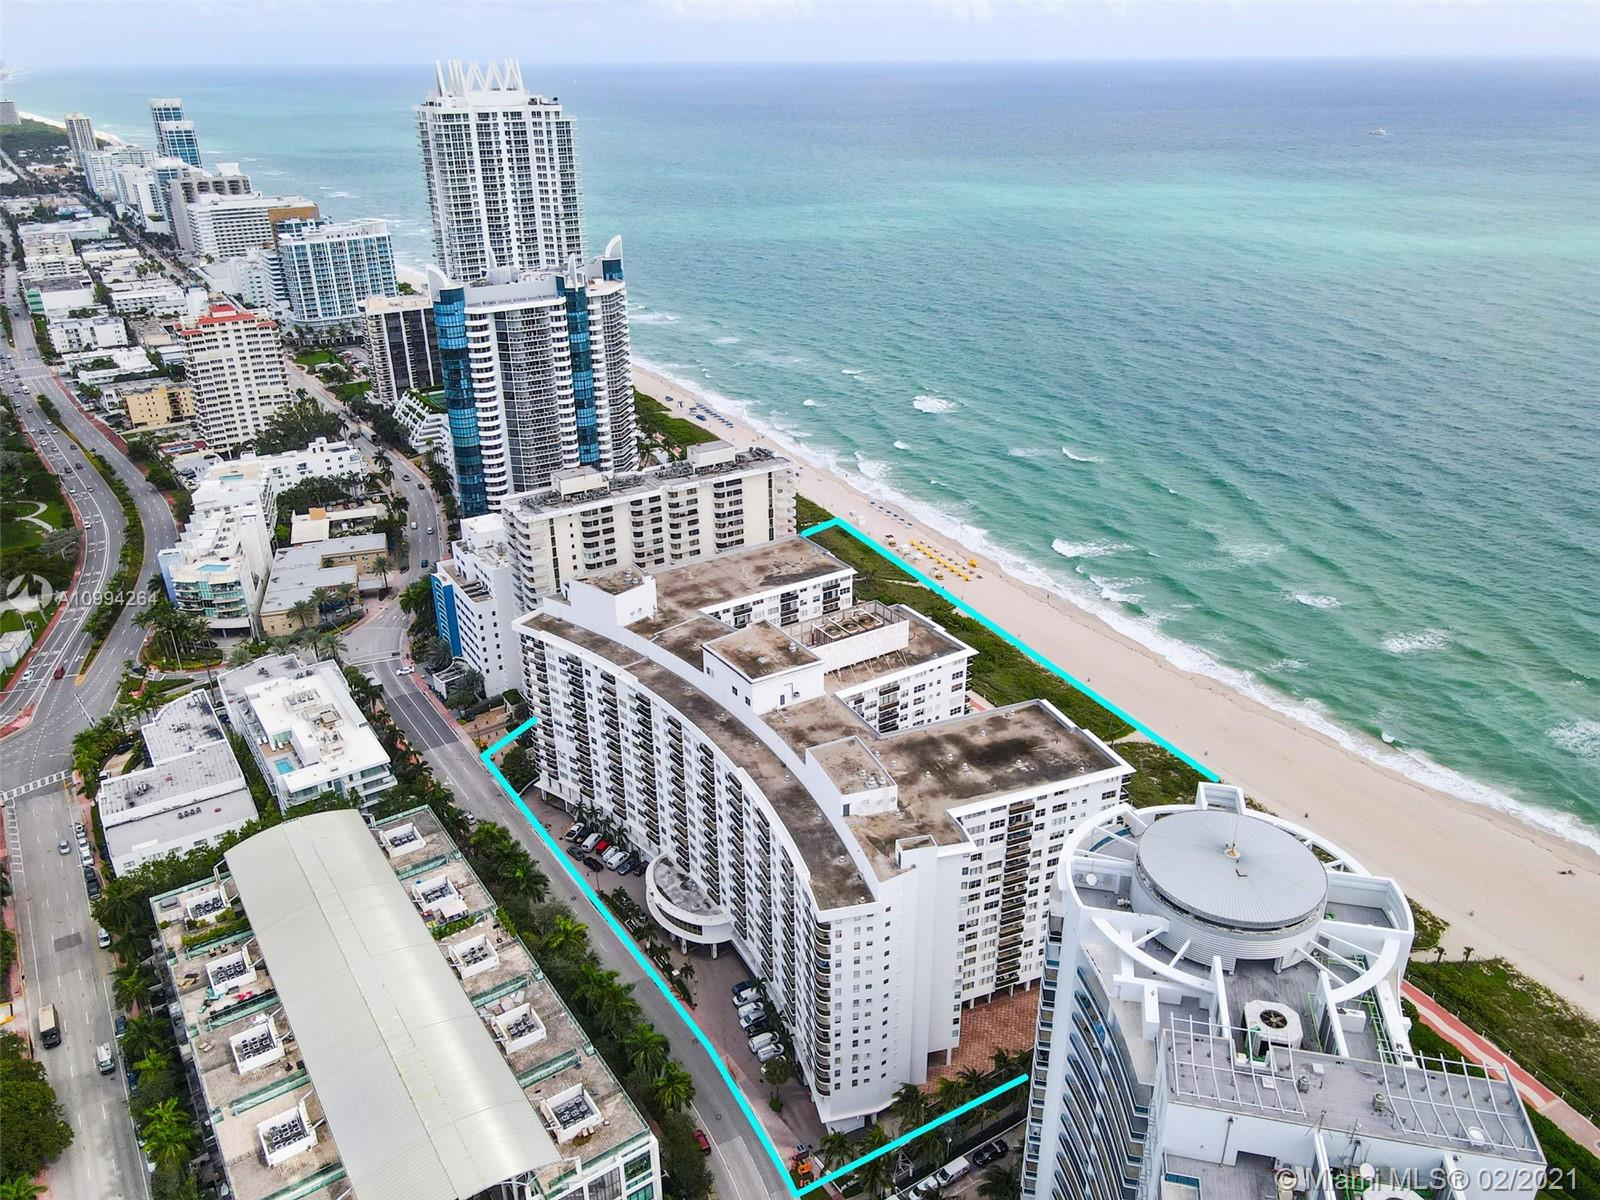 Maison Grande #716 - 6039 Collins Ave #716, Miami Beach, FL 33140